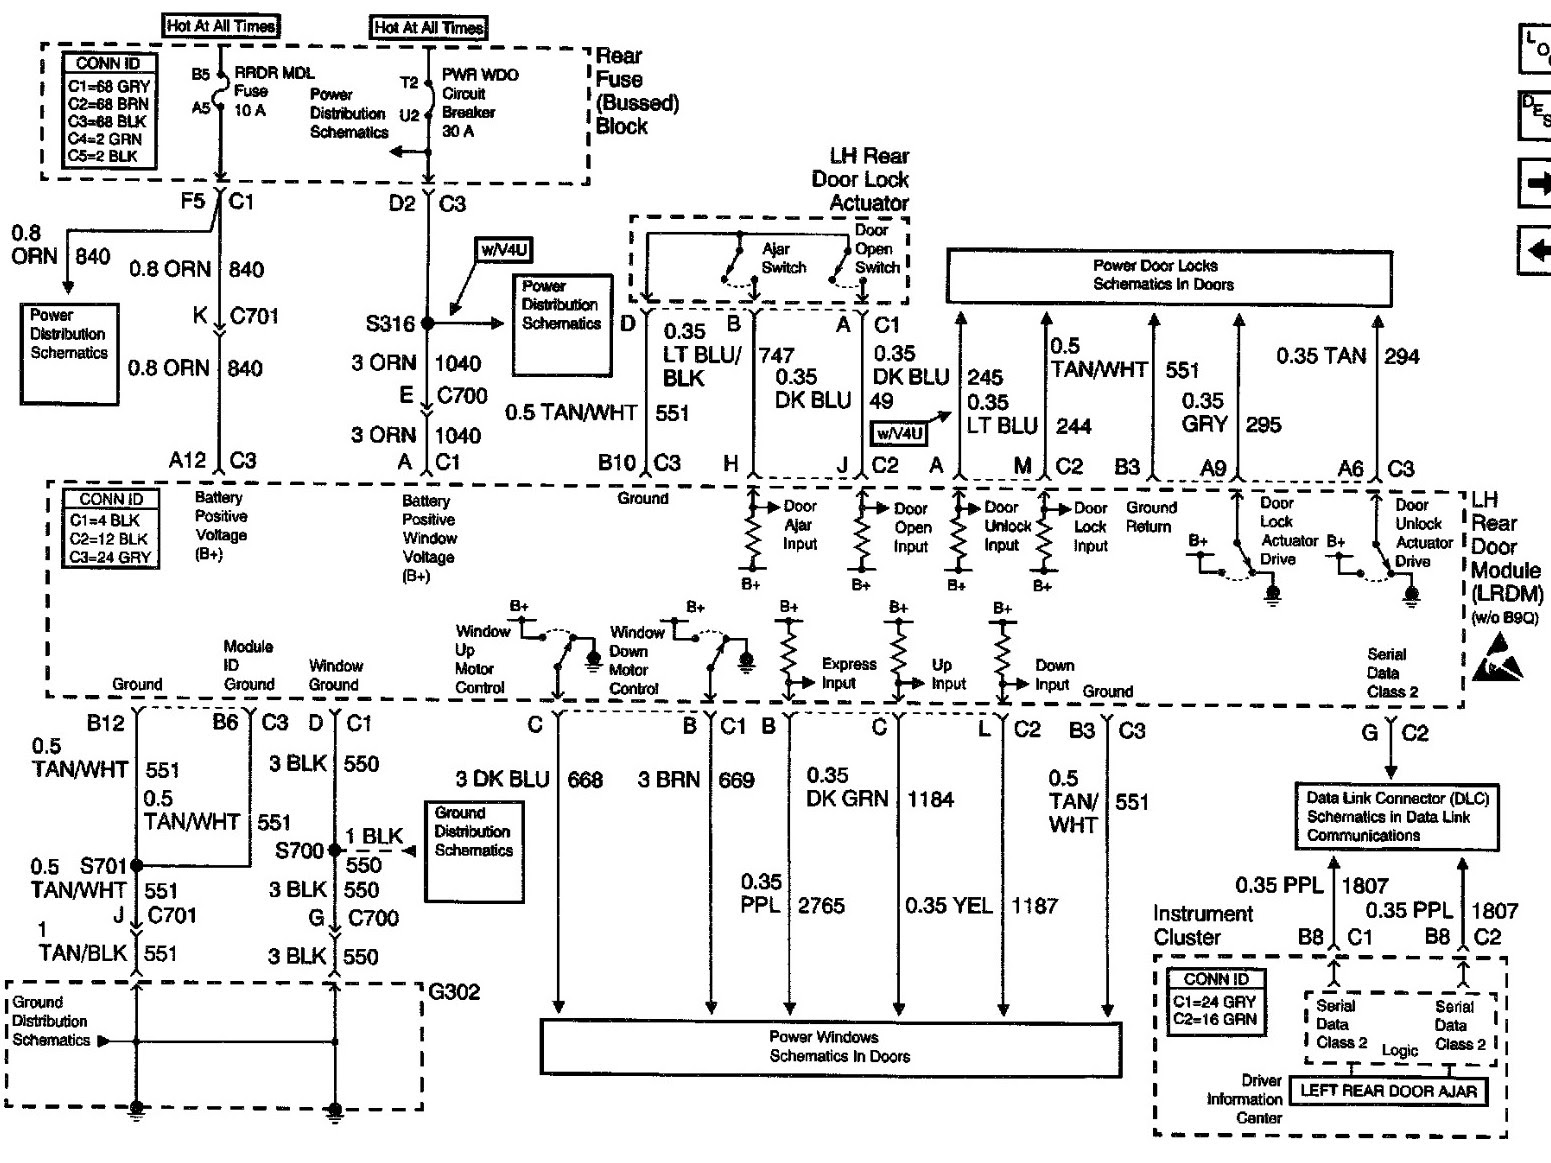 Diagram Cadillac Deville Radio Wiring Diagram Full Version Hd Quality Wiring Diagram Repairdiagram1 Stefanocerchiaro It